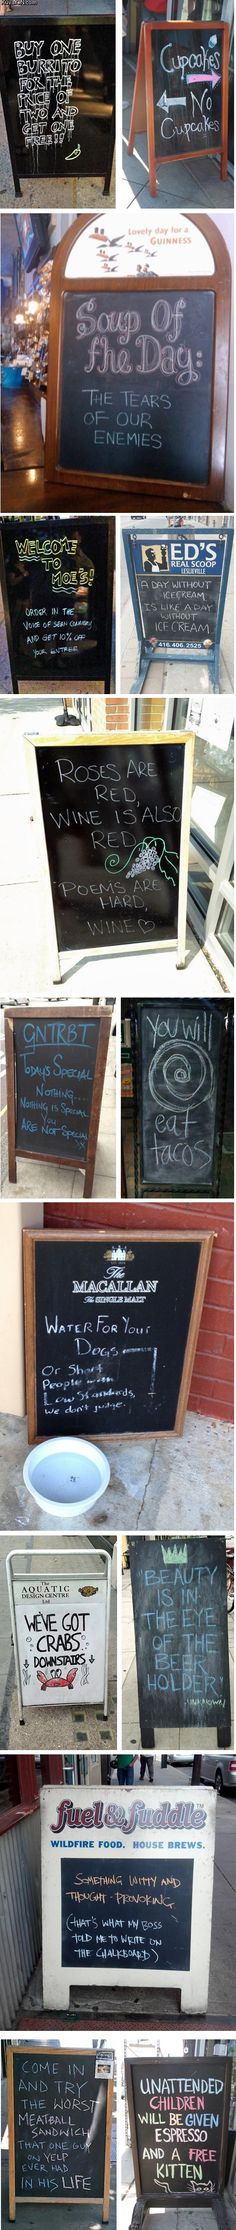 The best chalkboard signs ever